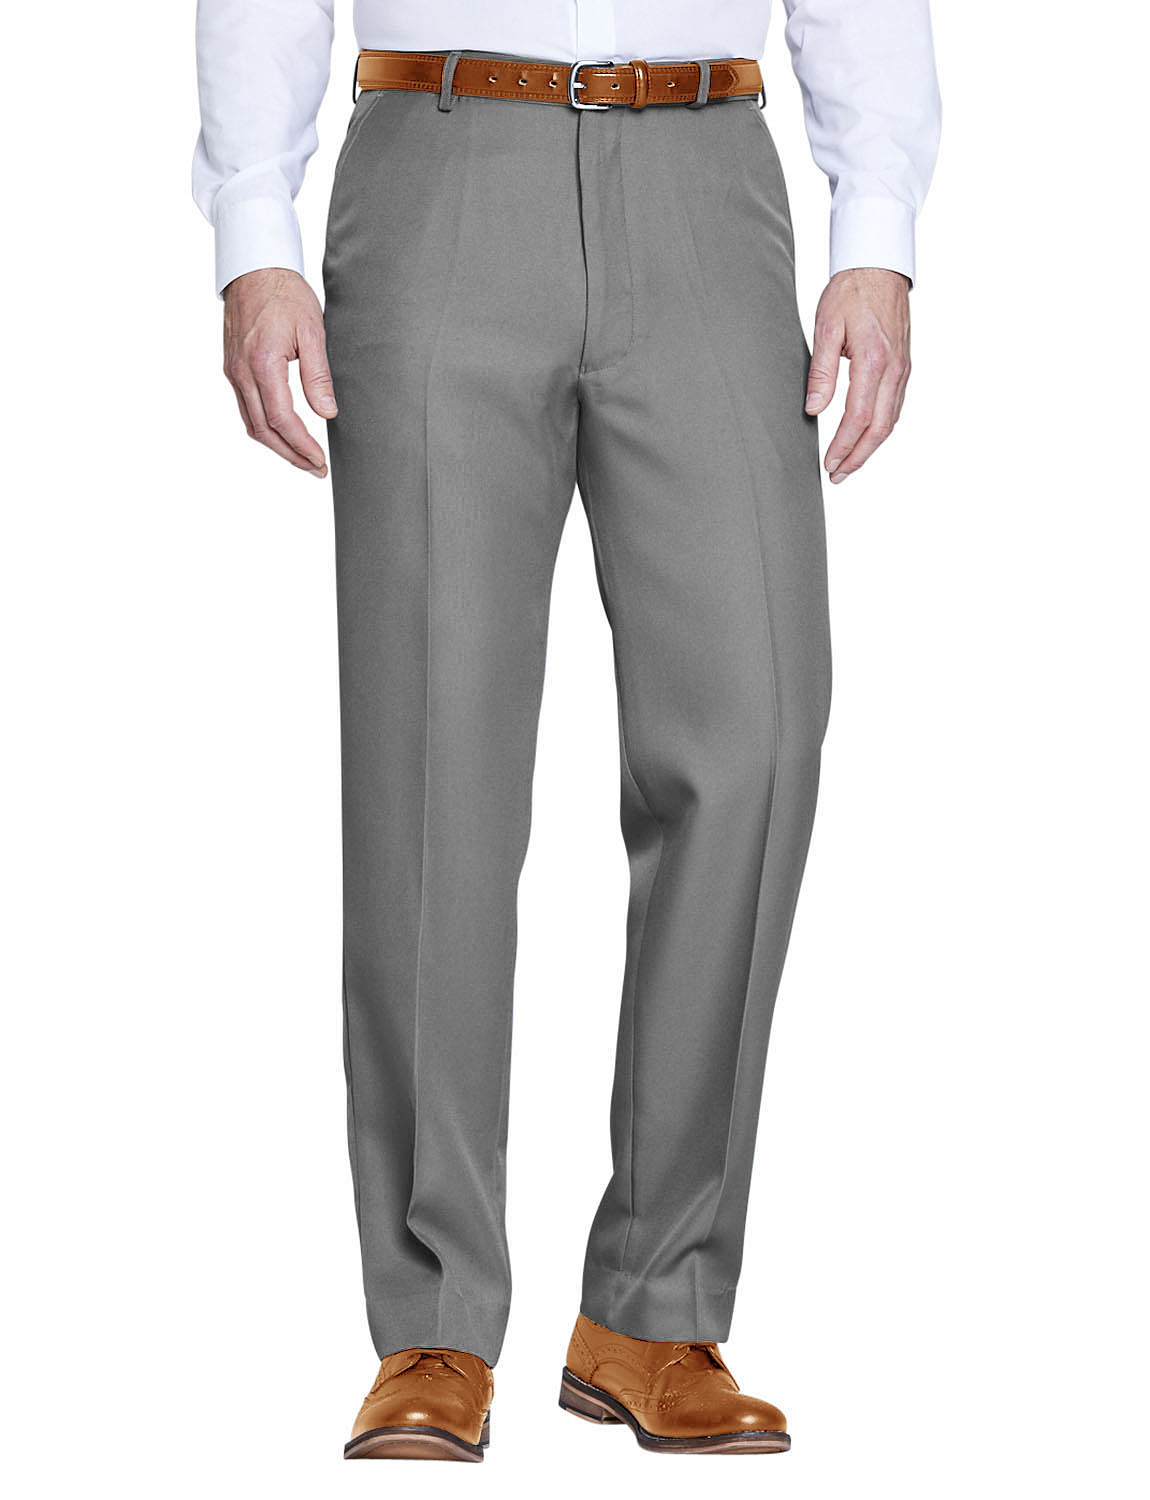 Chums Mens HIGH-Rise Poly Twill Trouser Pants with Stretch Waist